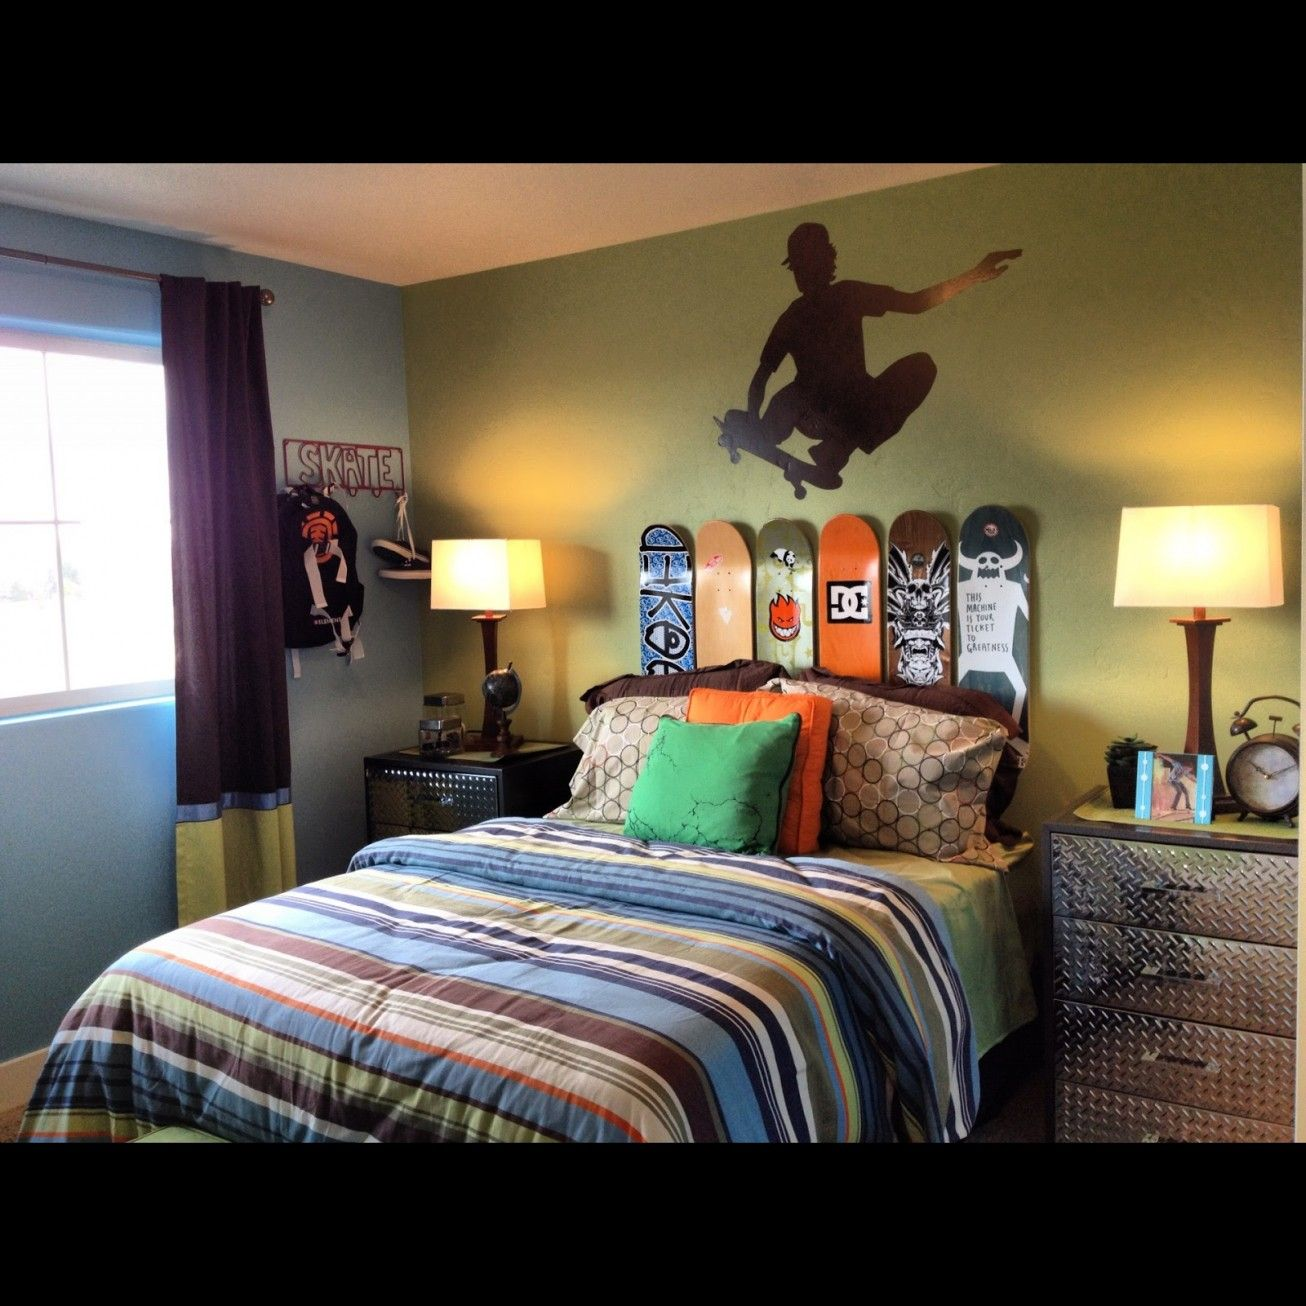 Some Uniqueness Of Skateboard Bedroom Decor For Kids Exciting Small Skateboard Decor With Bed Drape Skateboard Room Skateboard Bedroom Teenager Bedroom Design